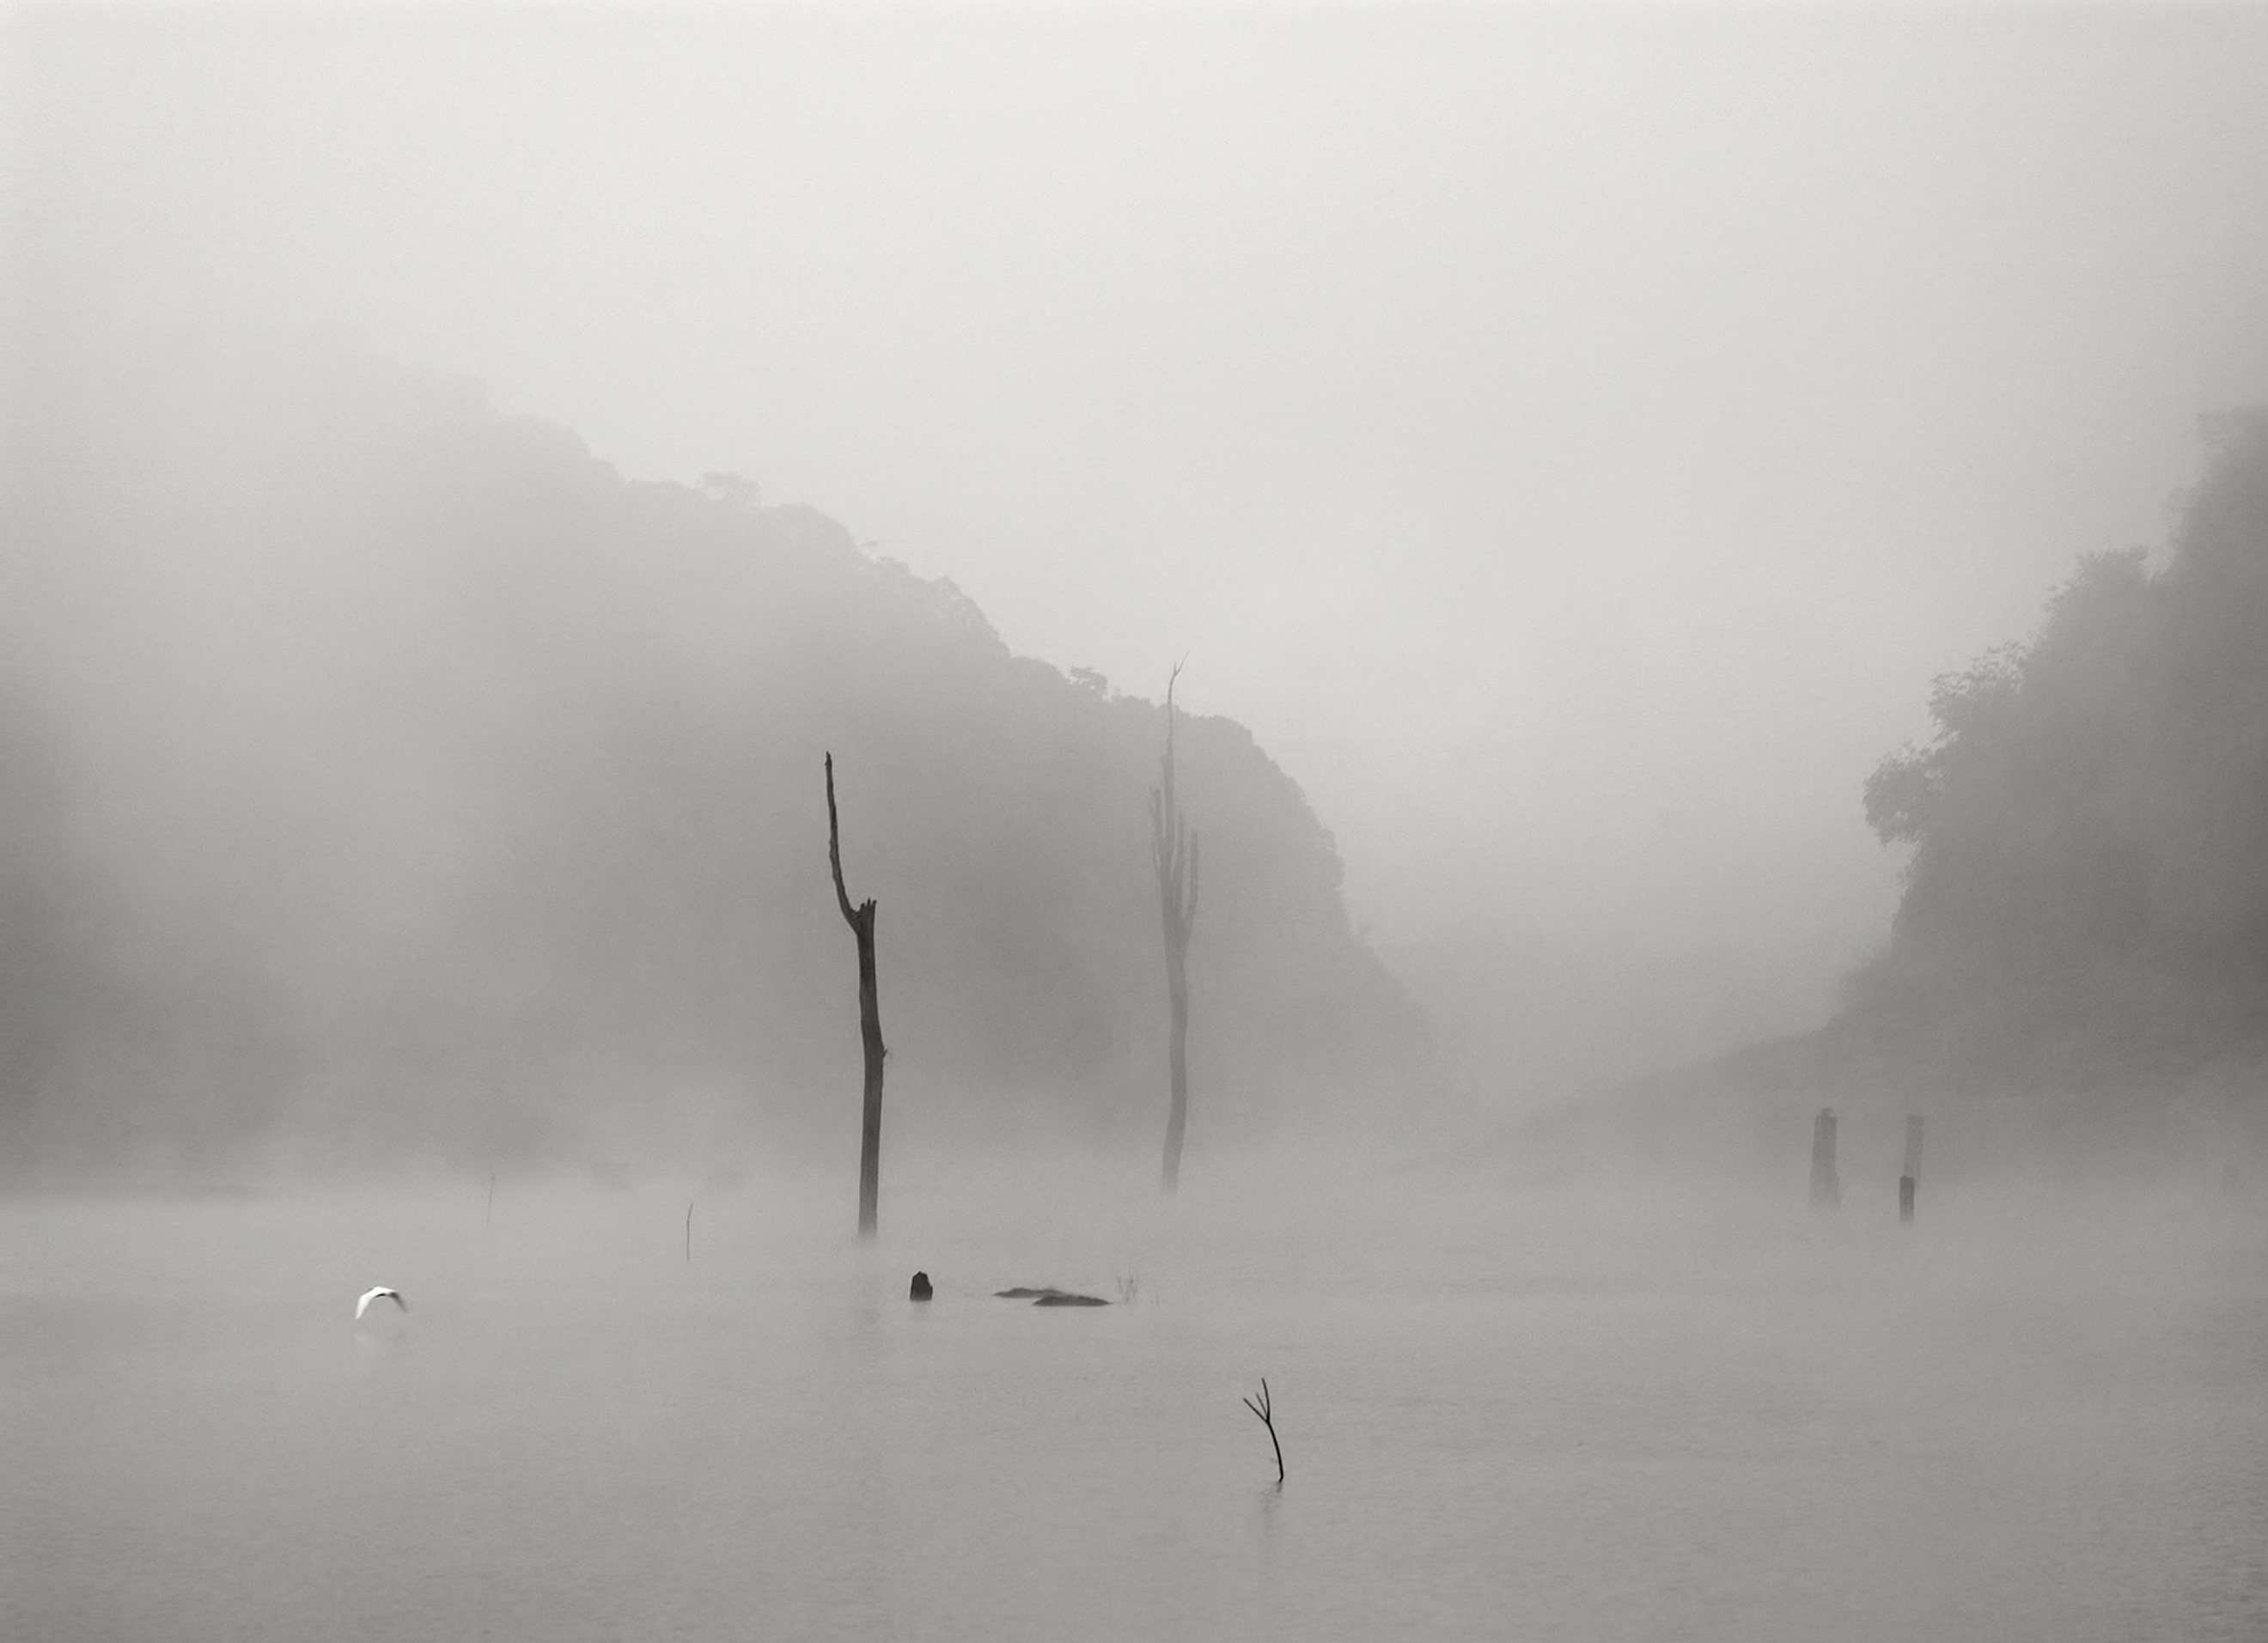 davidhoptman_photo-landscapes--india-fog-periar20inchq